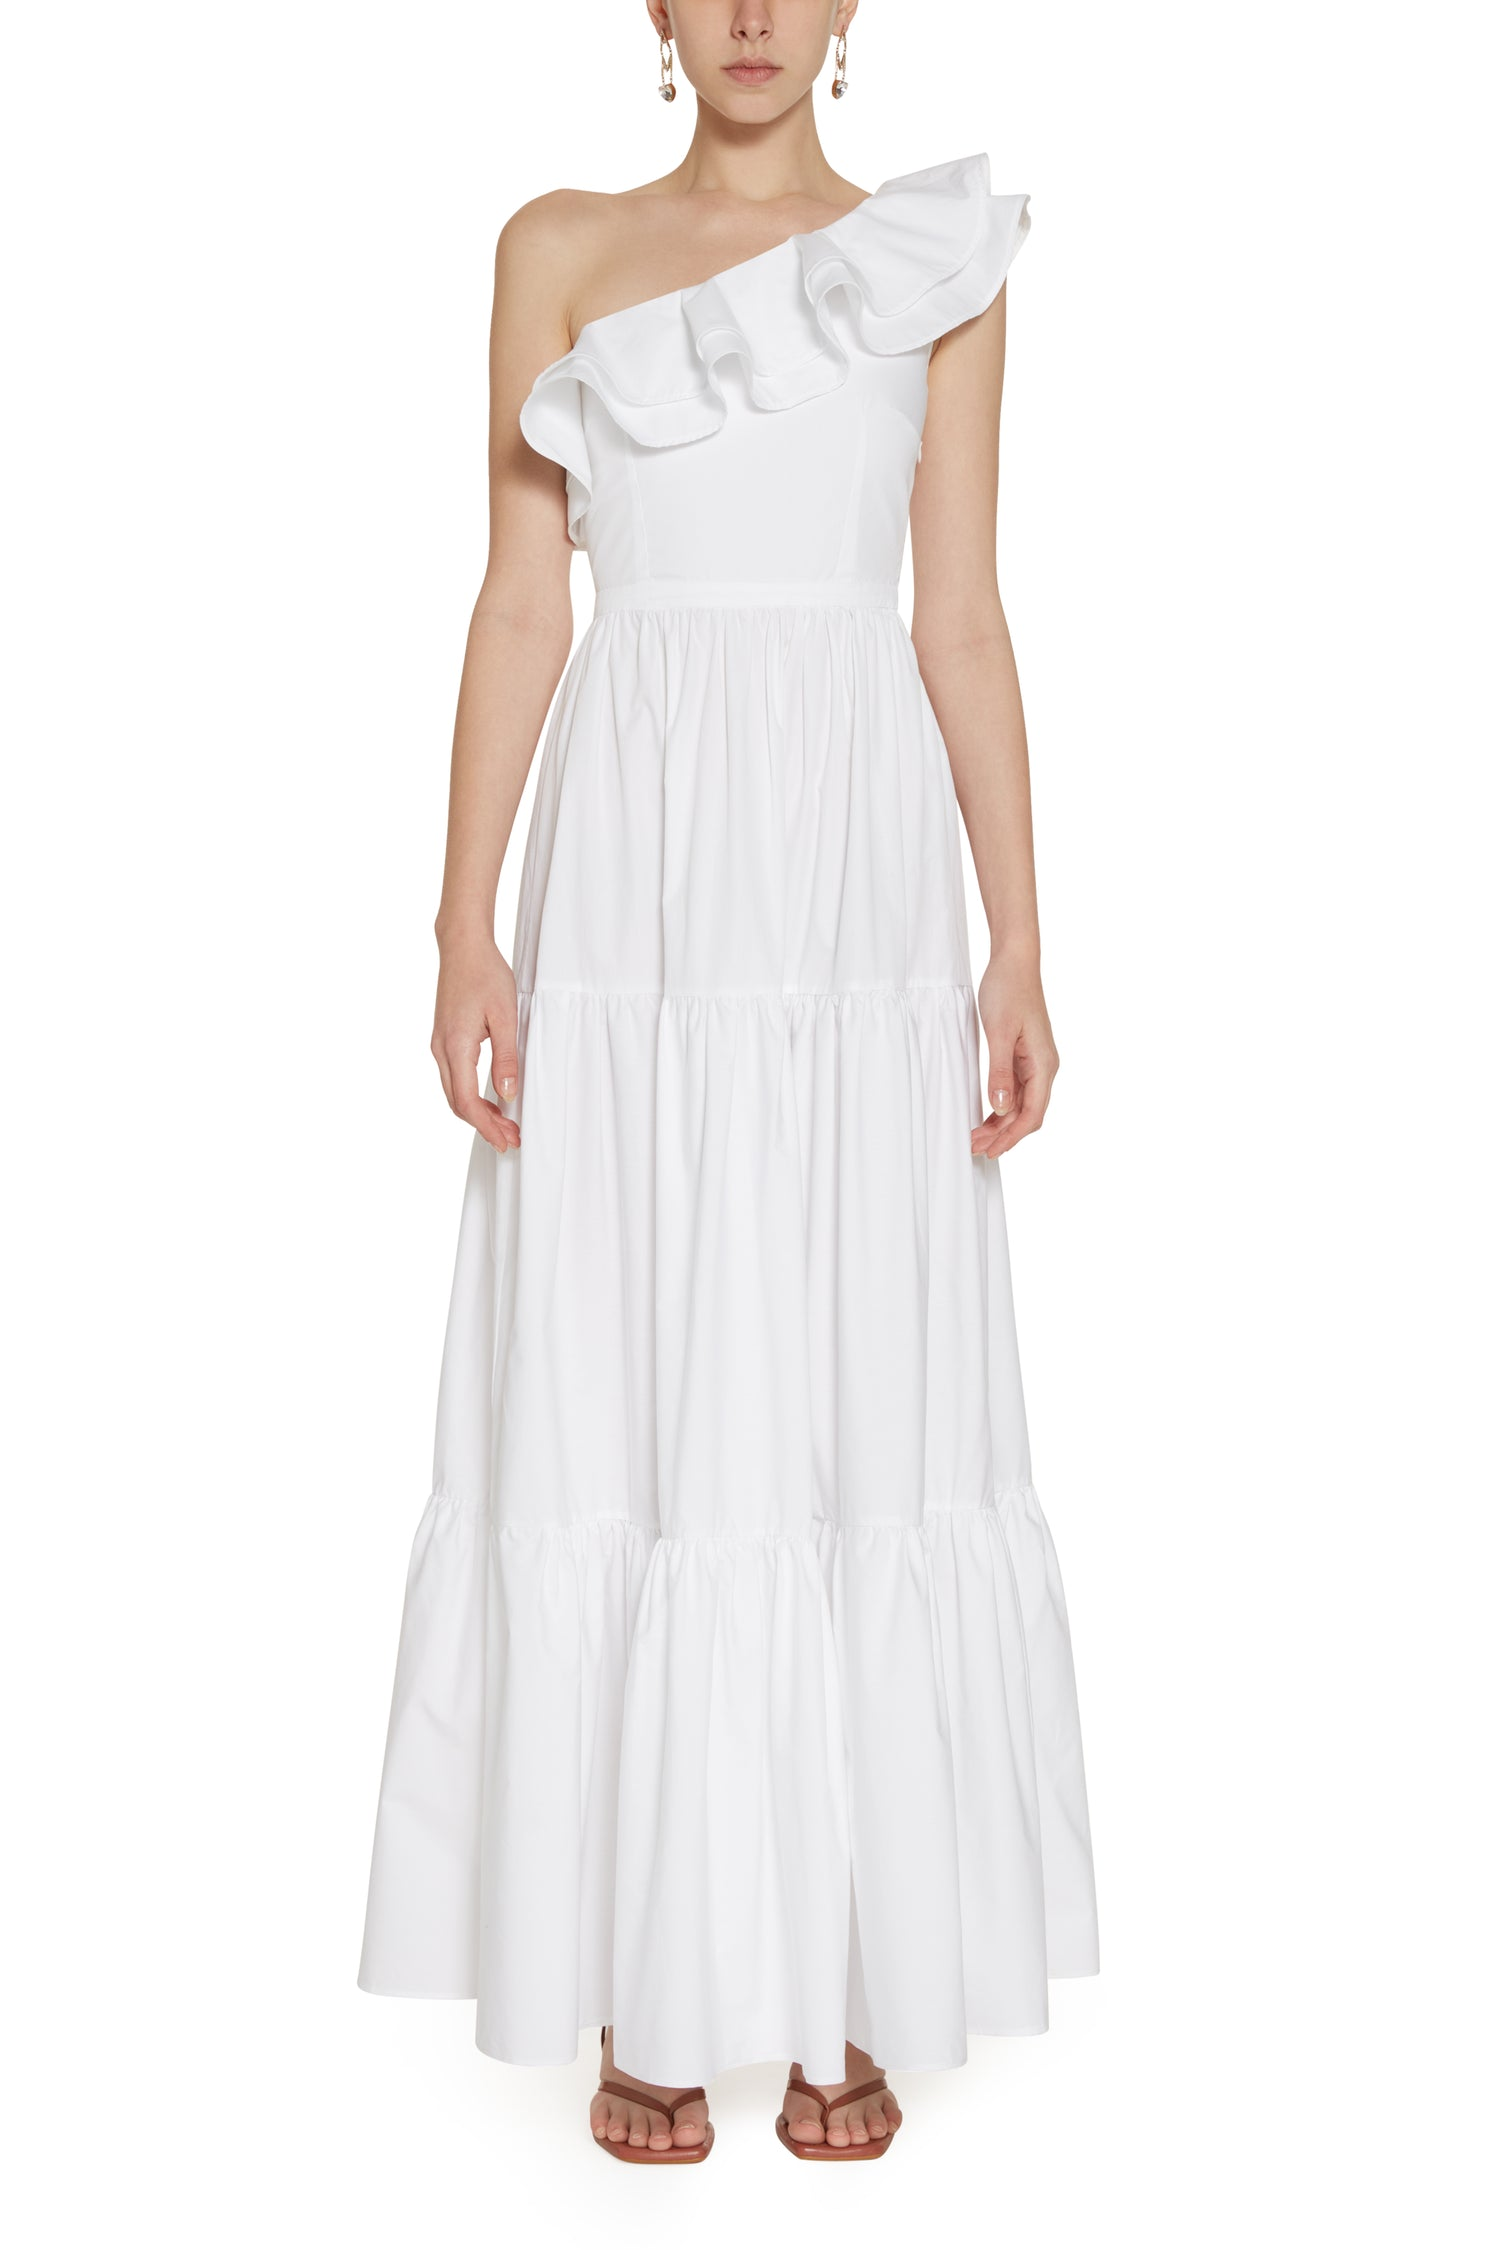 WHITE POPLIN LEONOR DRESS